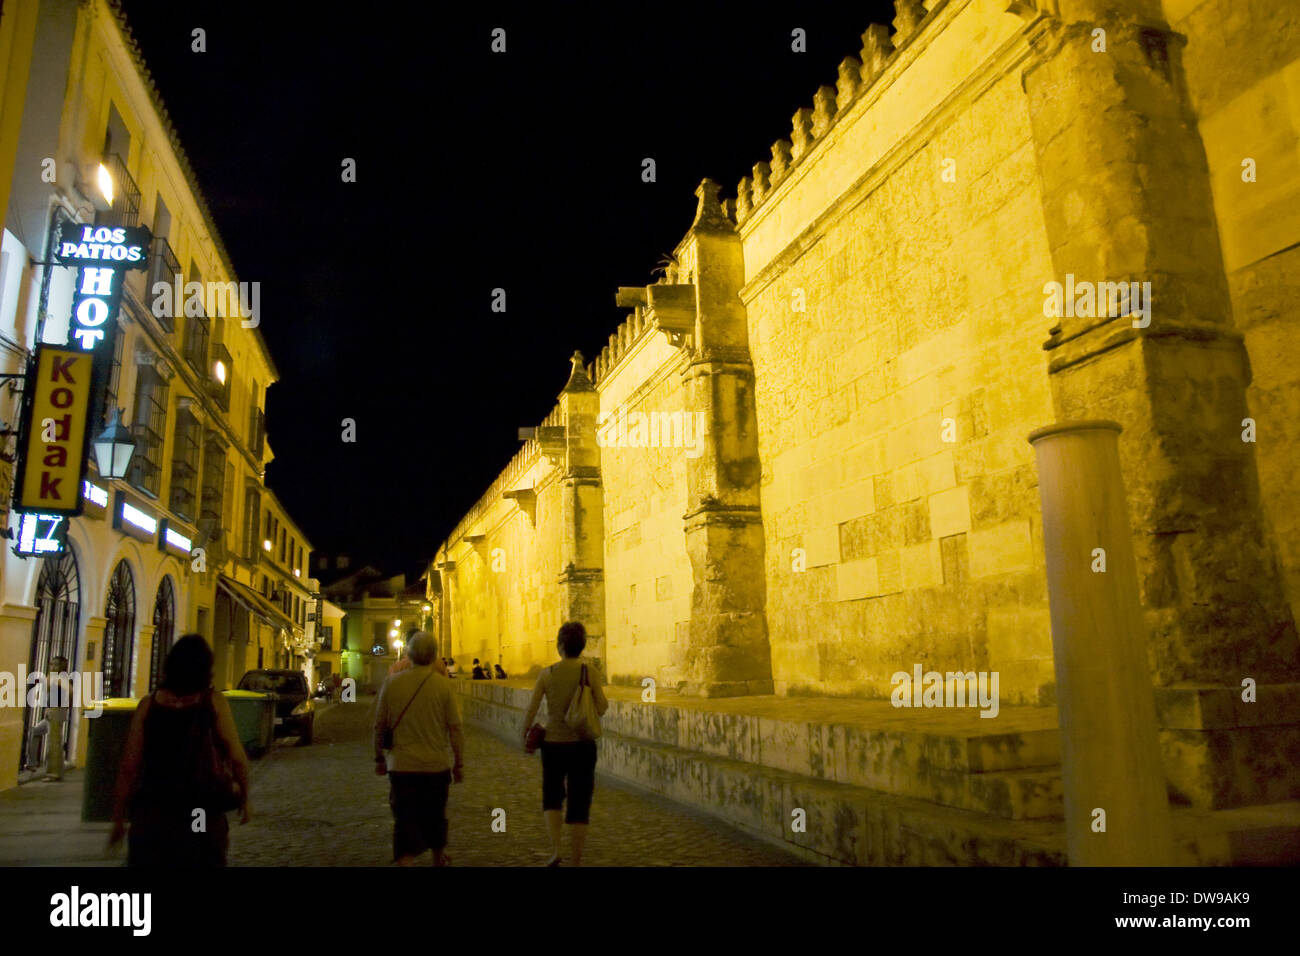 Cardenal Herrero street and Great Mosque, Cordoba - Stock Image